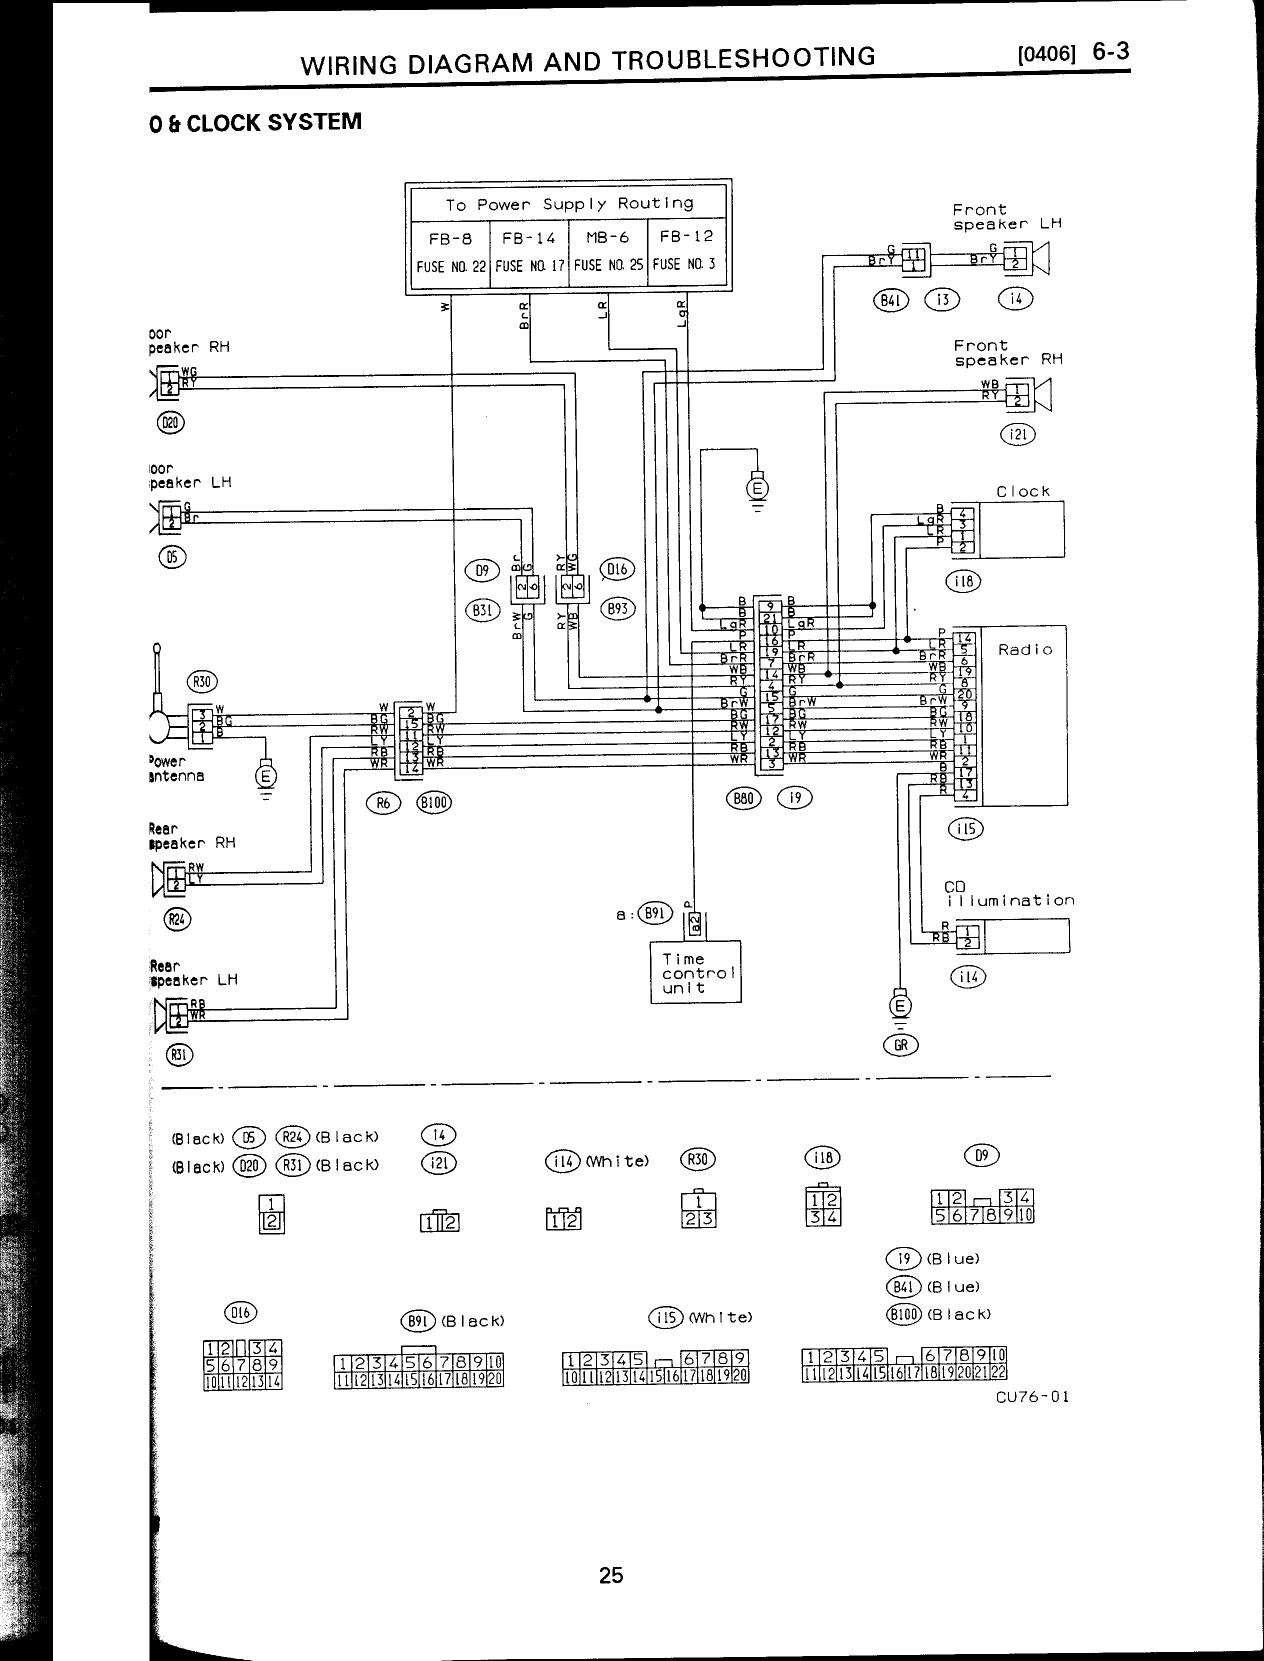 251 j SVXRadioWrg subaru legacy wiring diagram radio wiring diagram and schematic 2015 subaru forester radio wiring diagram at reclaimingppi.co